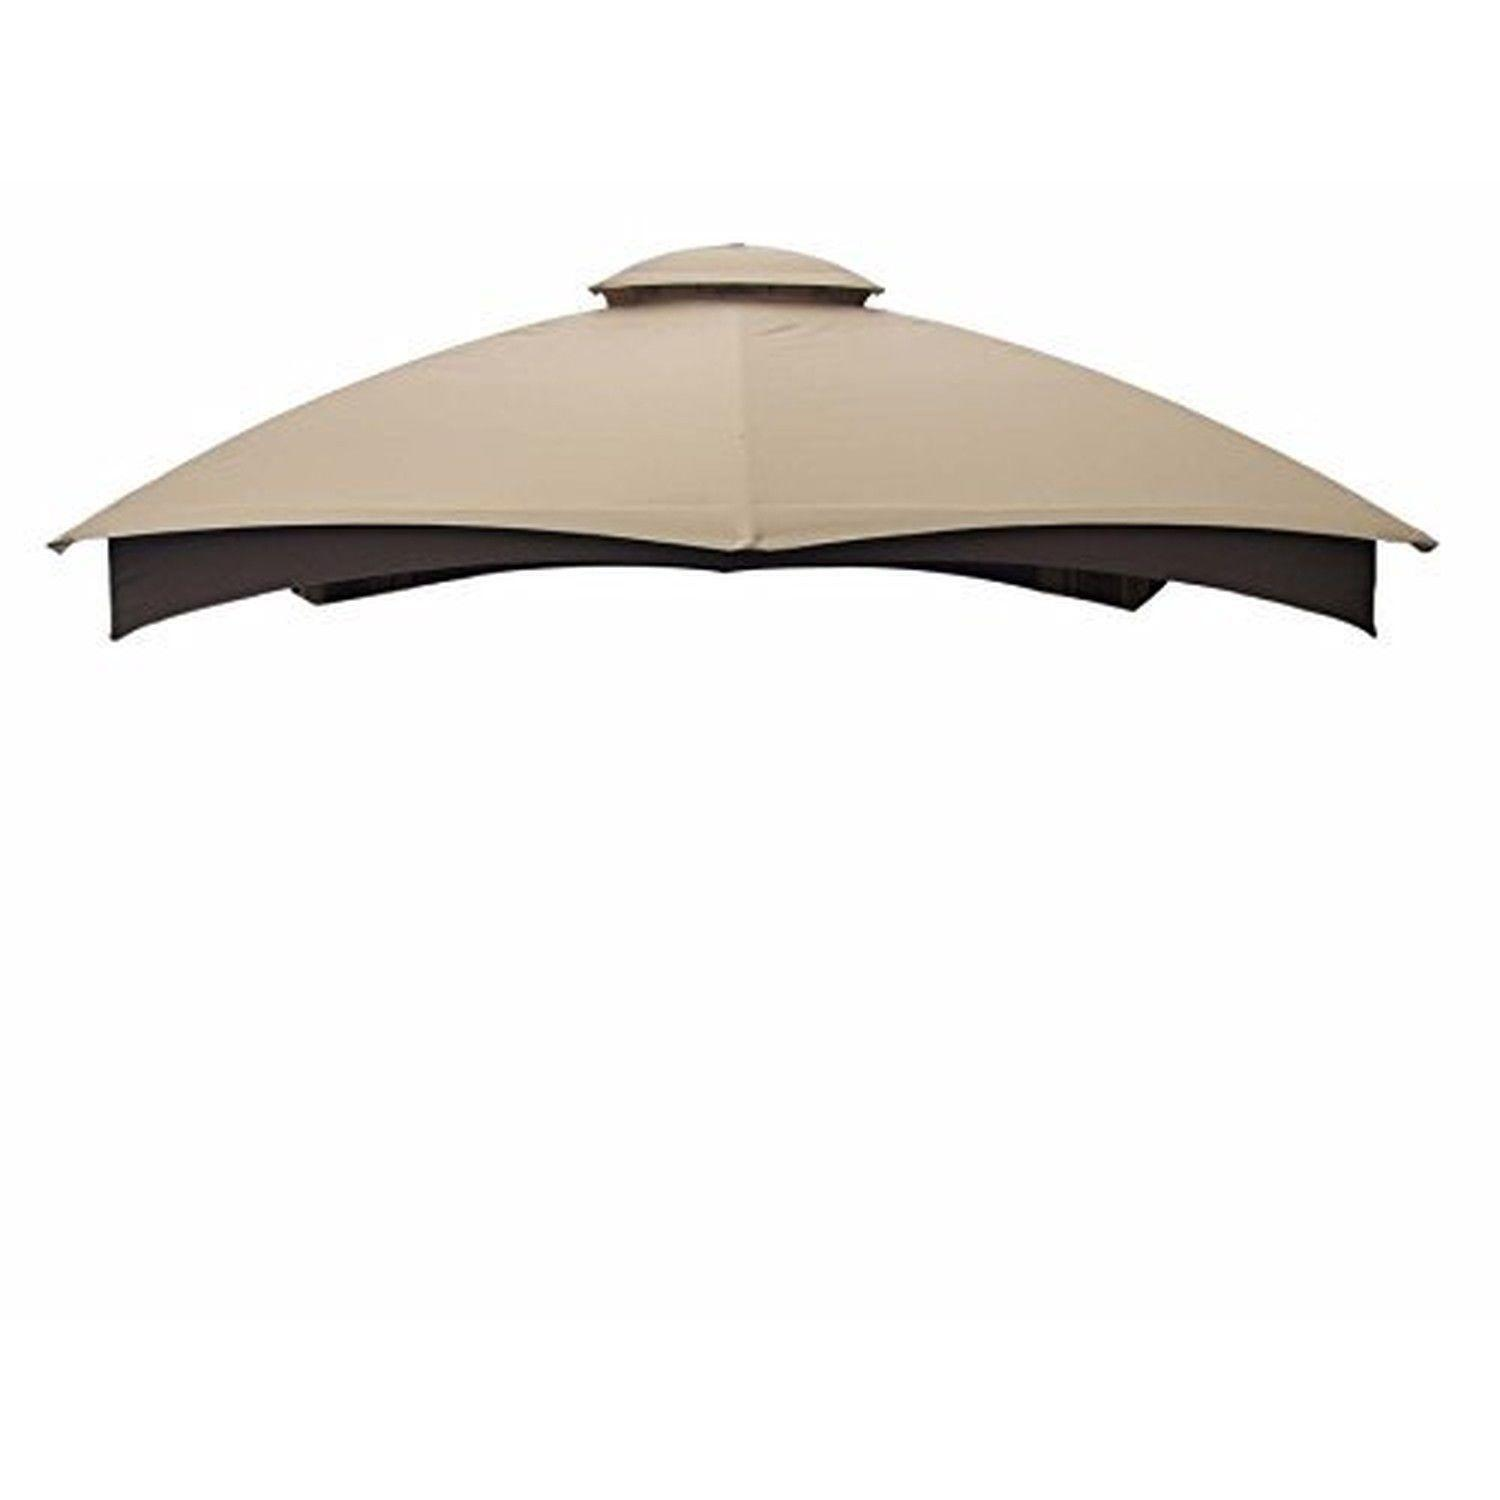 Apex Garden Replacement Canopy Top for Lowes Allen Roth 10x12 Gazebo  sc 1 st  eBay & Garden Canopies | eBay